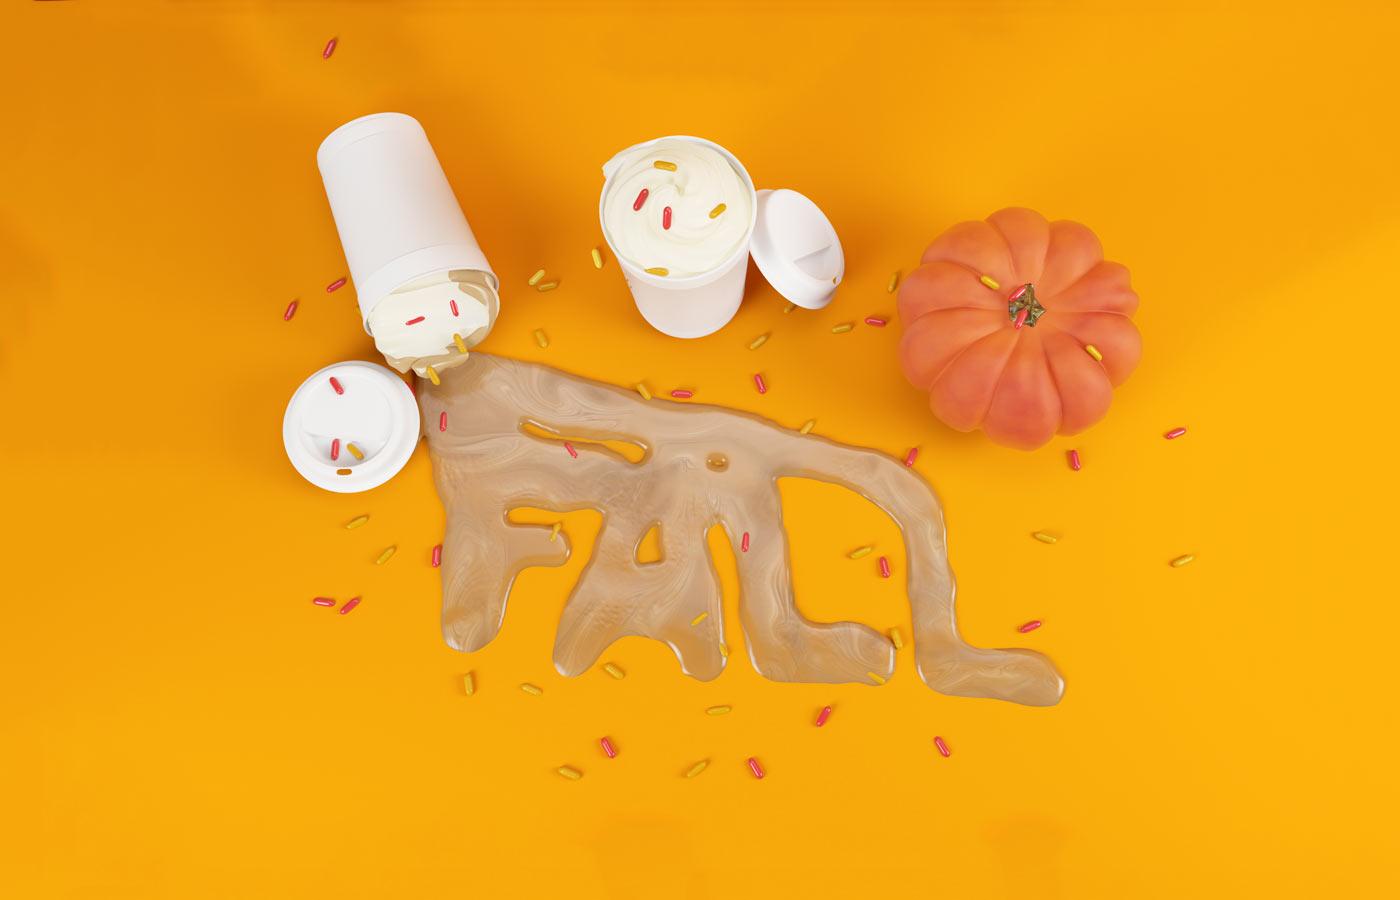 3DLETTERING CESS 3D 3DTYPE LETTERING CGI 3DARTIST DRINK COFFEE FUN FALL